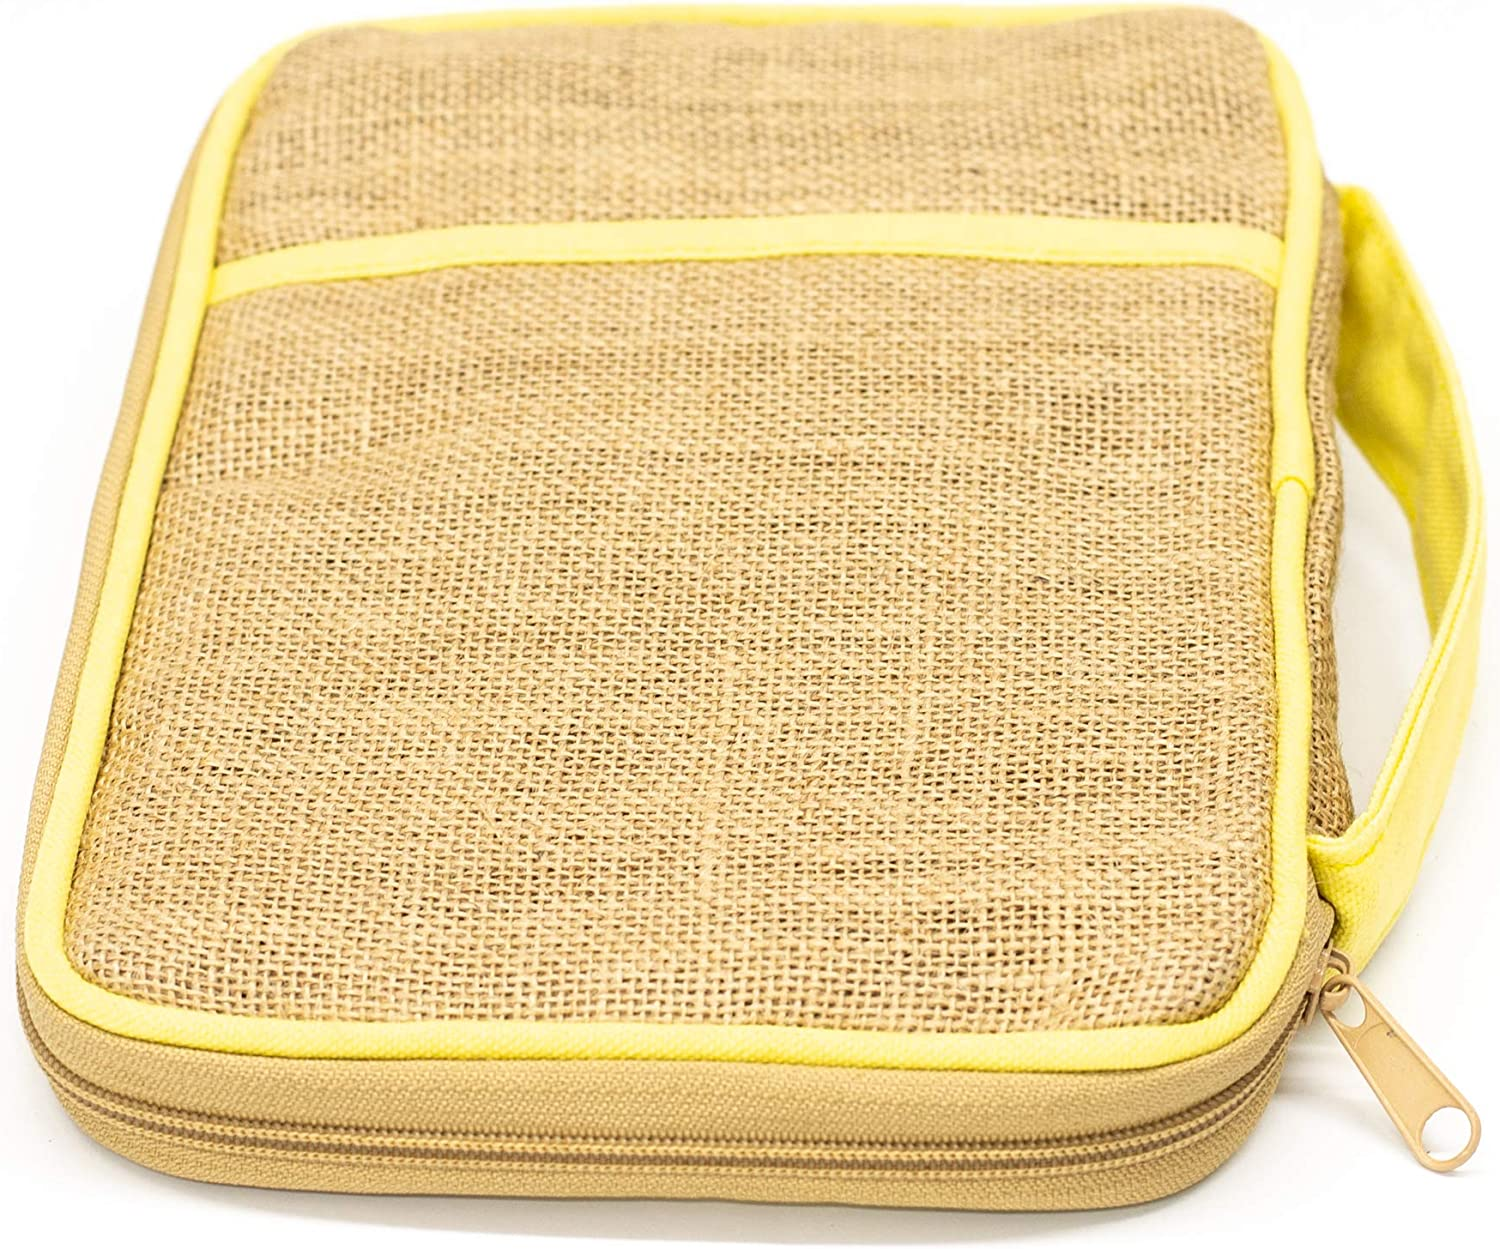 Dicksons Be Still /& Know Flower Petals Tan and Pale Yellow Zippered Cotton and Jute Woven Bible Cover Case with Handle Thinline